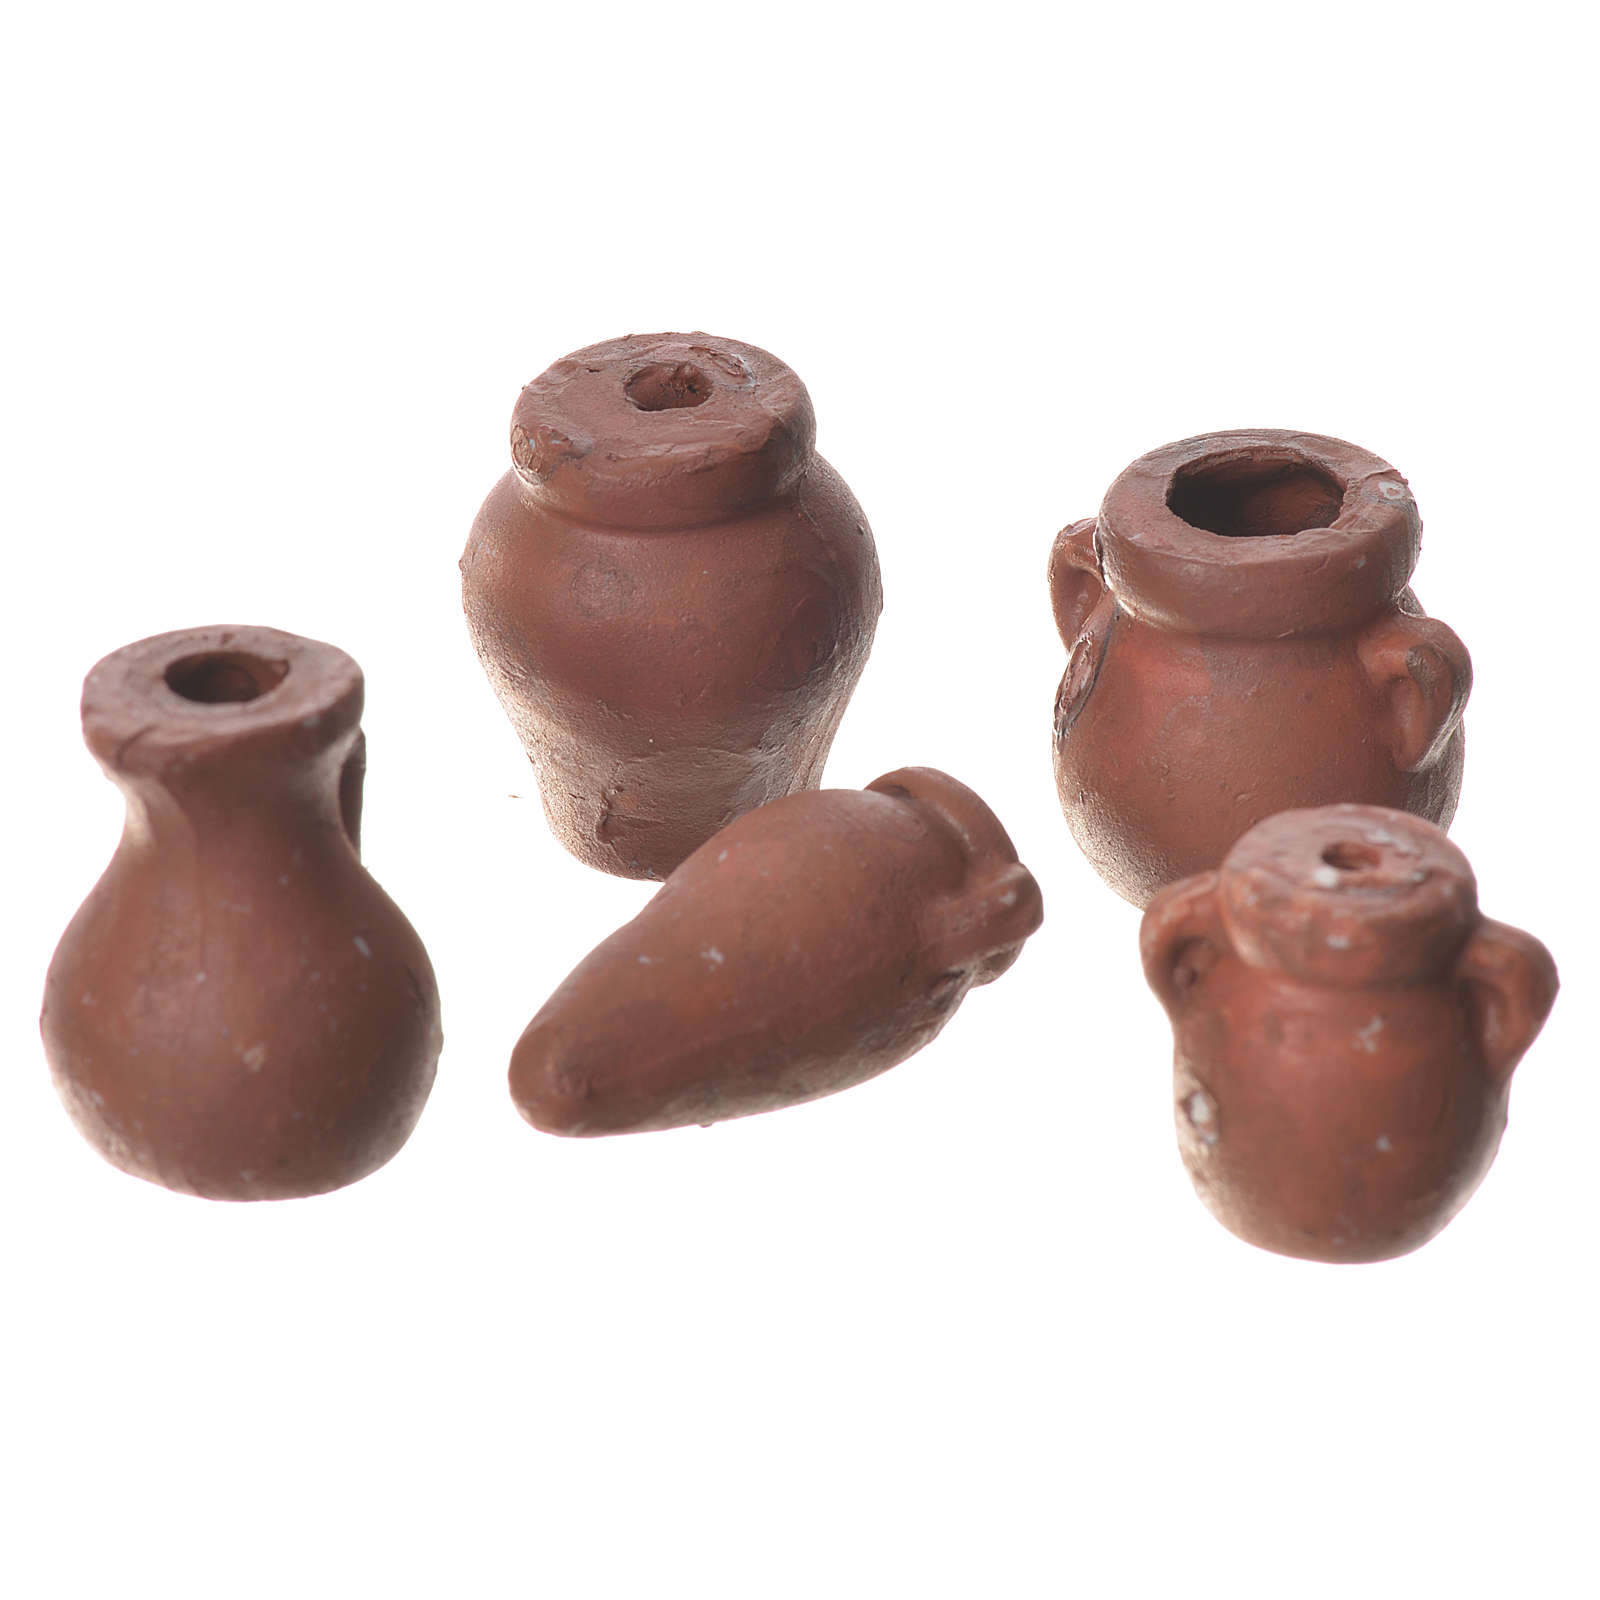 Assorted Amphorae in terracotta, 5 pieces for nativities 4